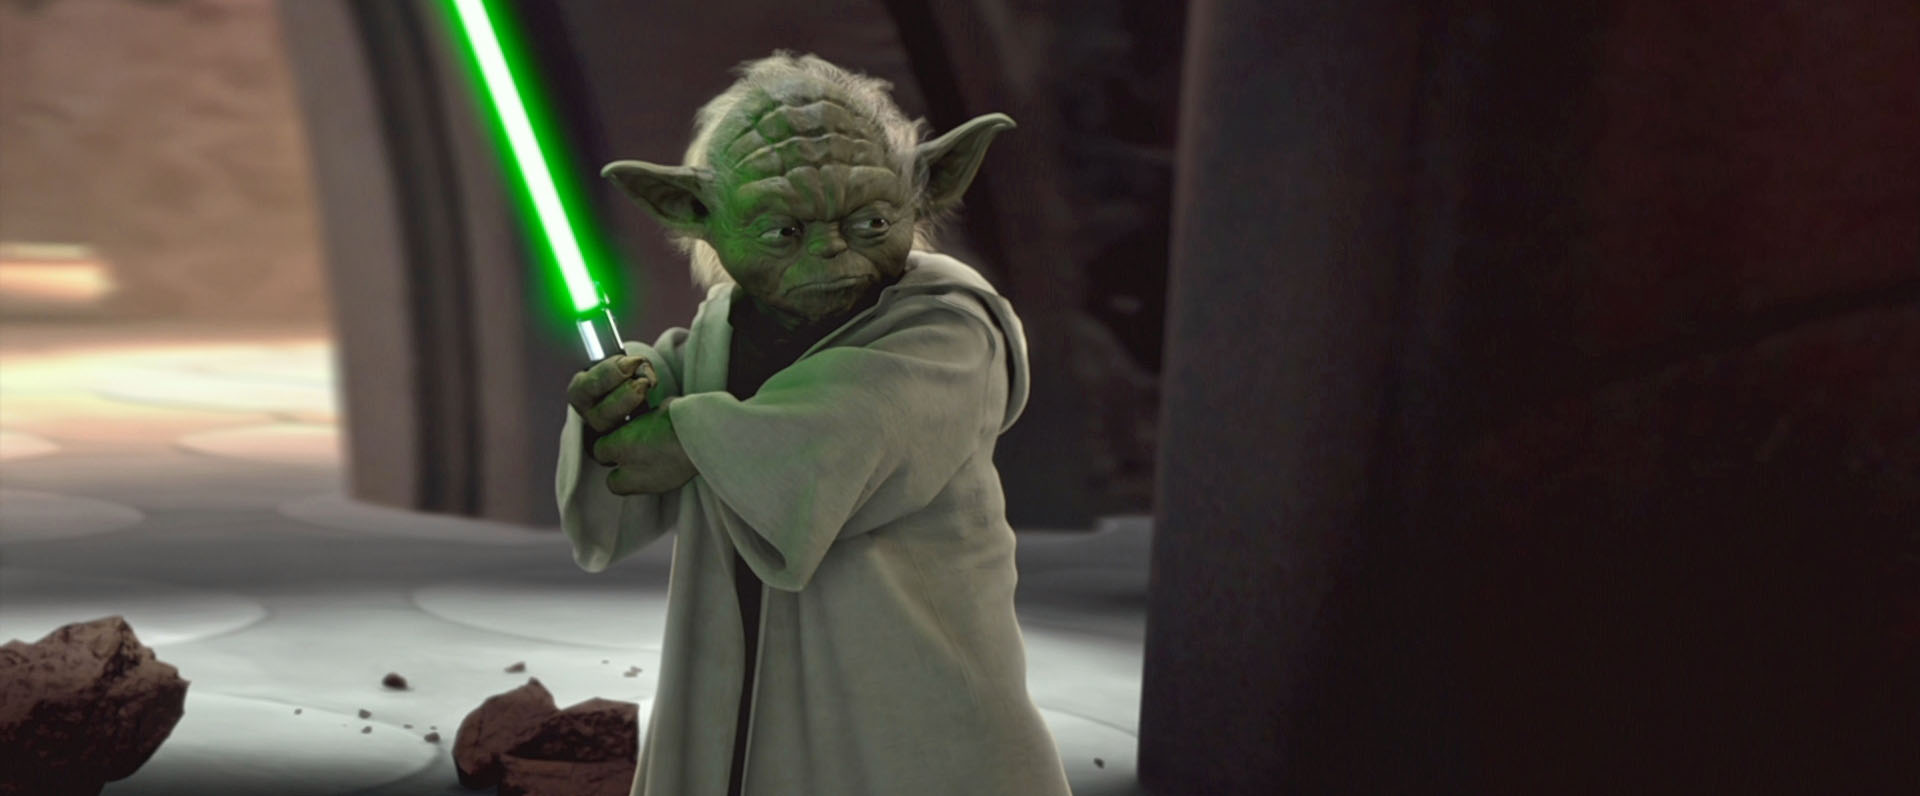 upcoming star wars comic  reveal untold chapter  yoda